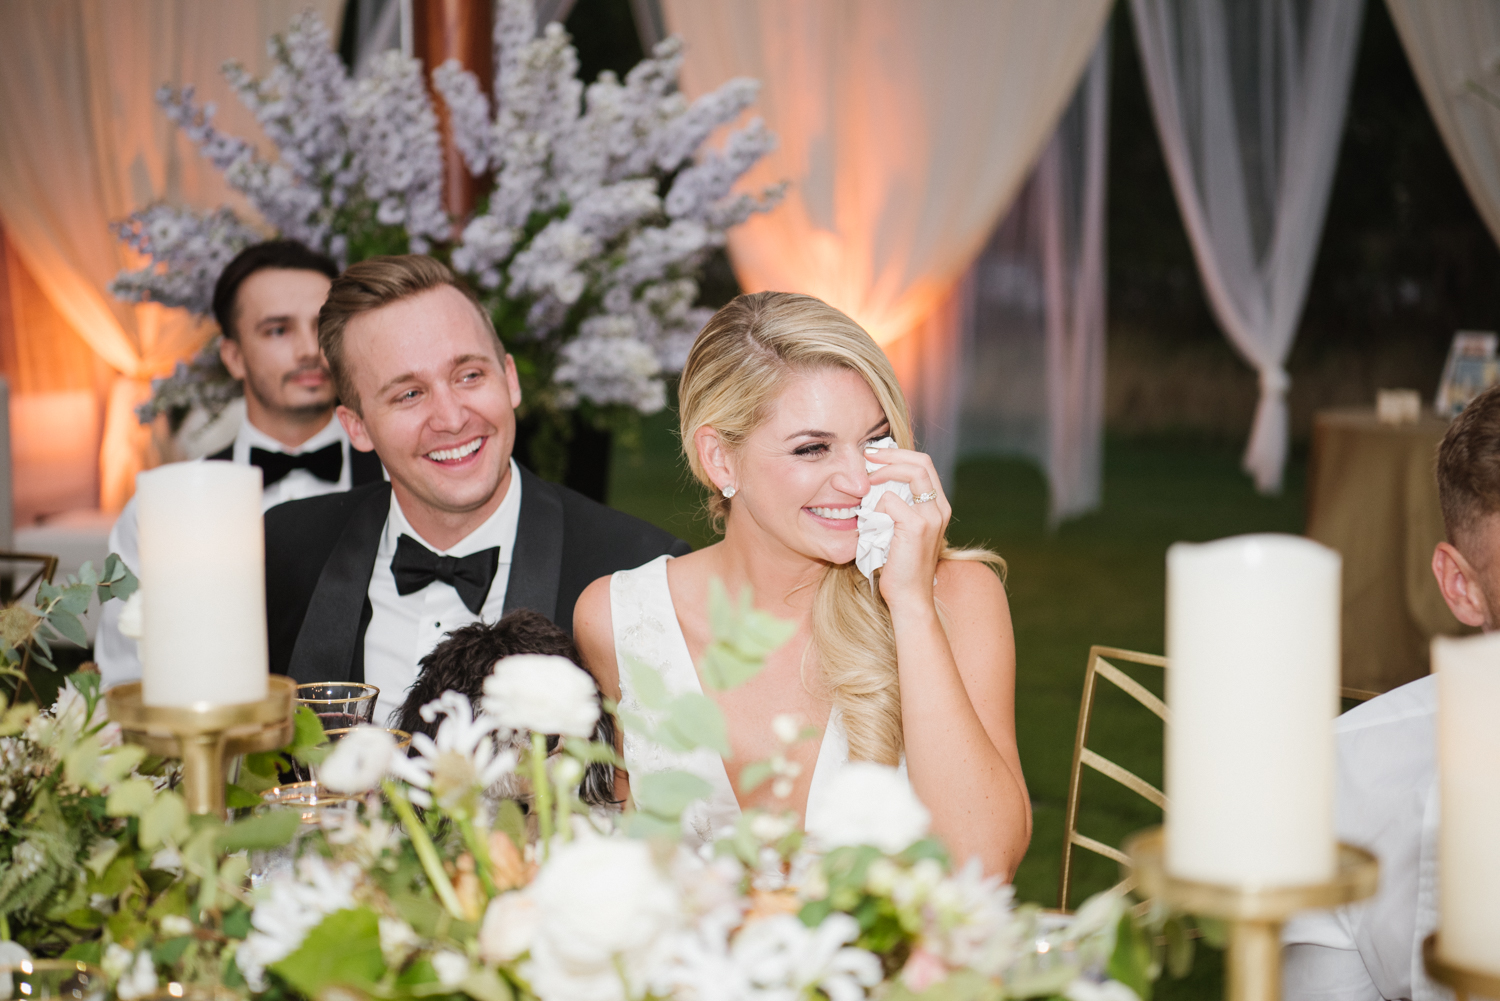 The couple tears up during toasts at their wedding reception in Whitefish, Montana